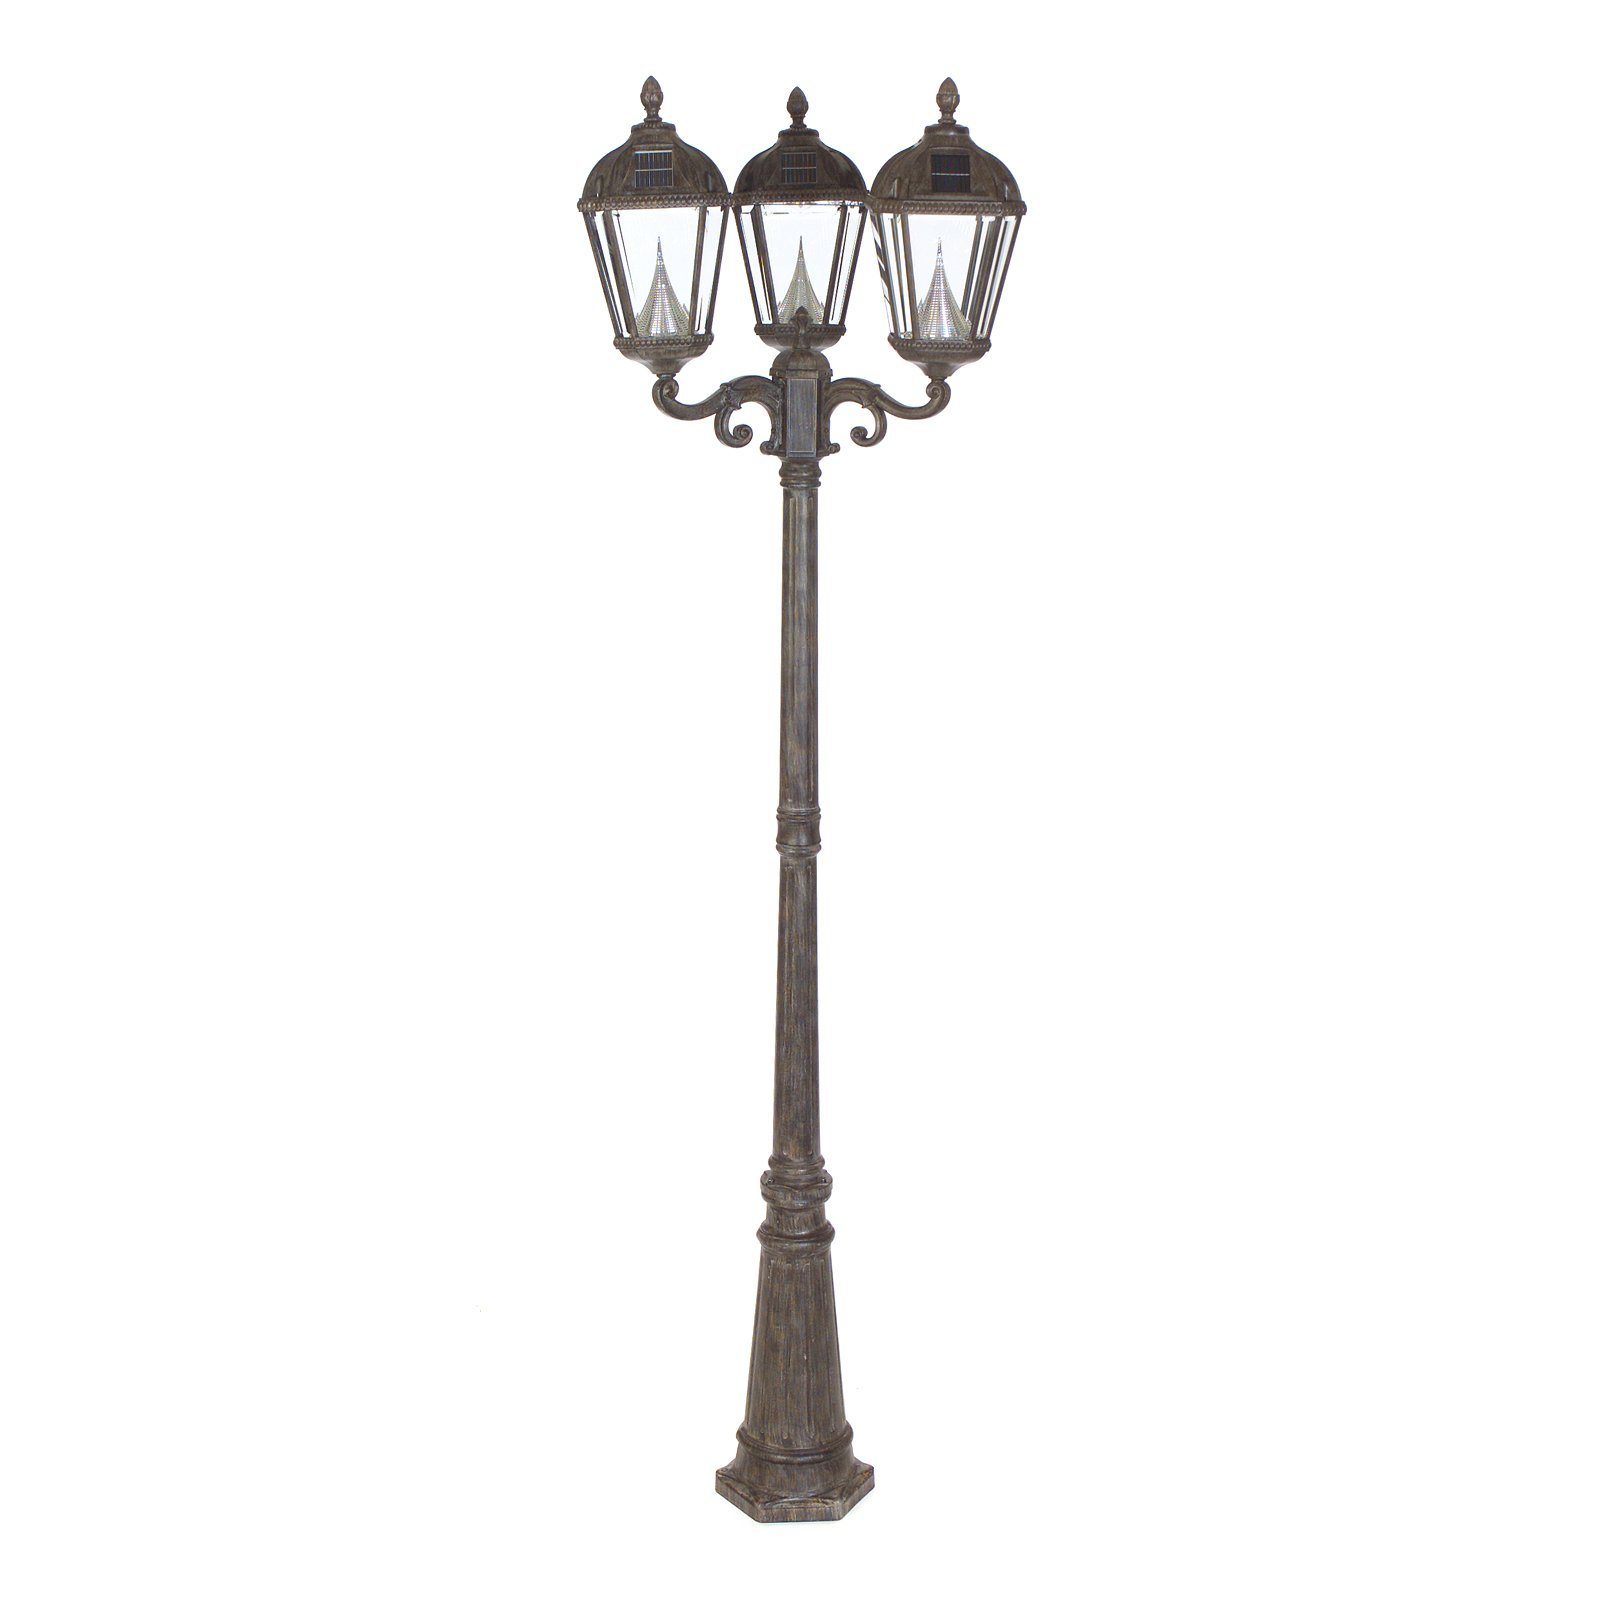 Superior Gama Sonic Royal Triple Light Solar Lamp Post   Walmart.com